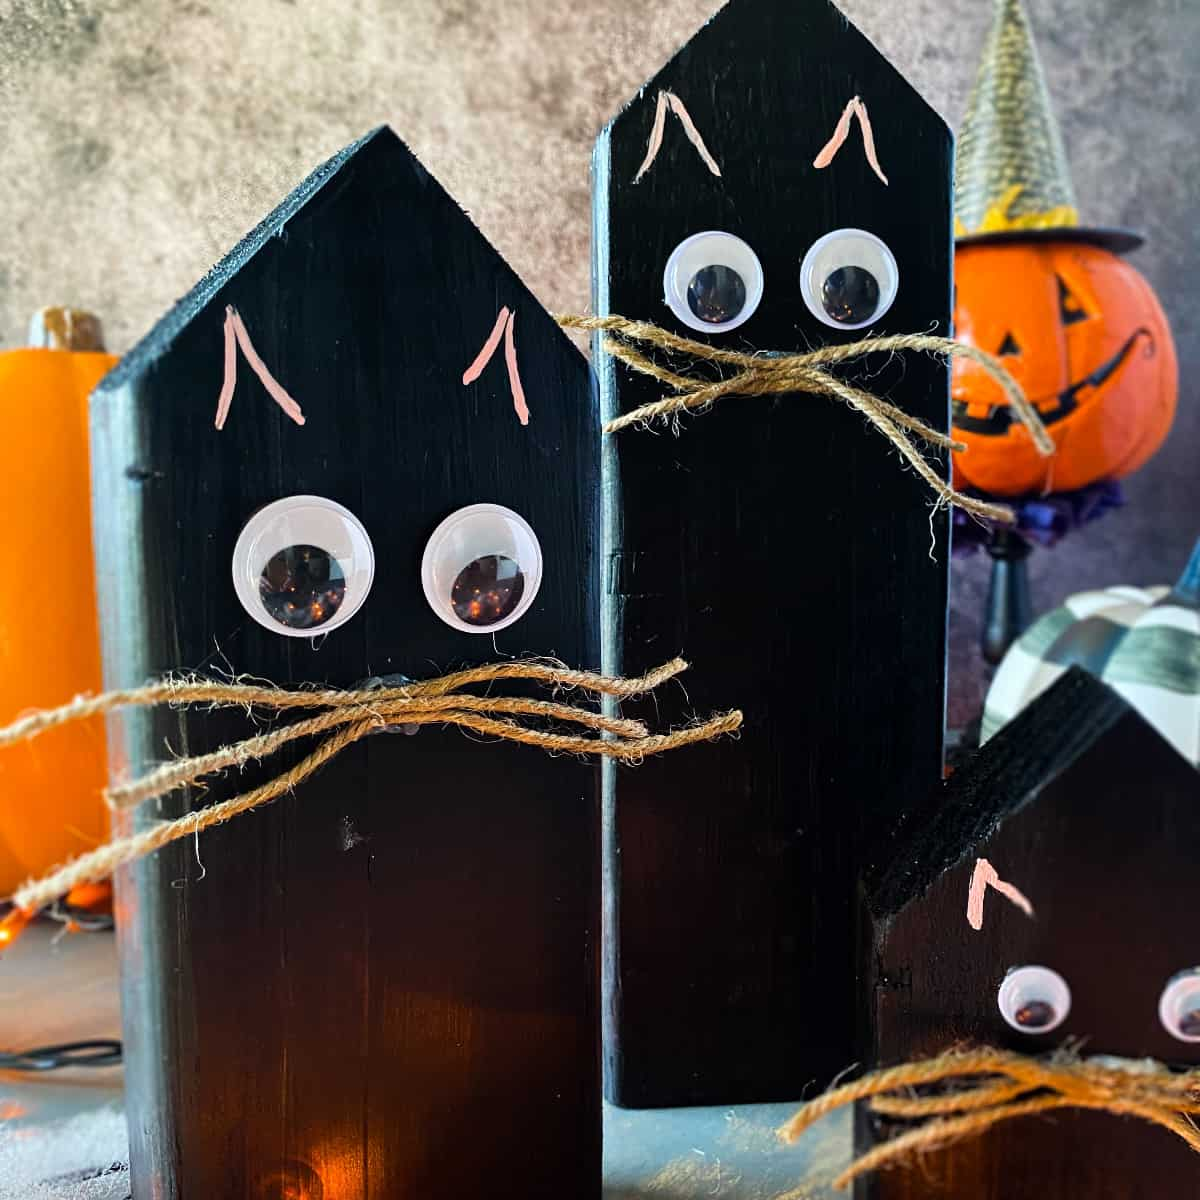 Three Halloween black cat wood block decor with Halloween decorations in the background.